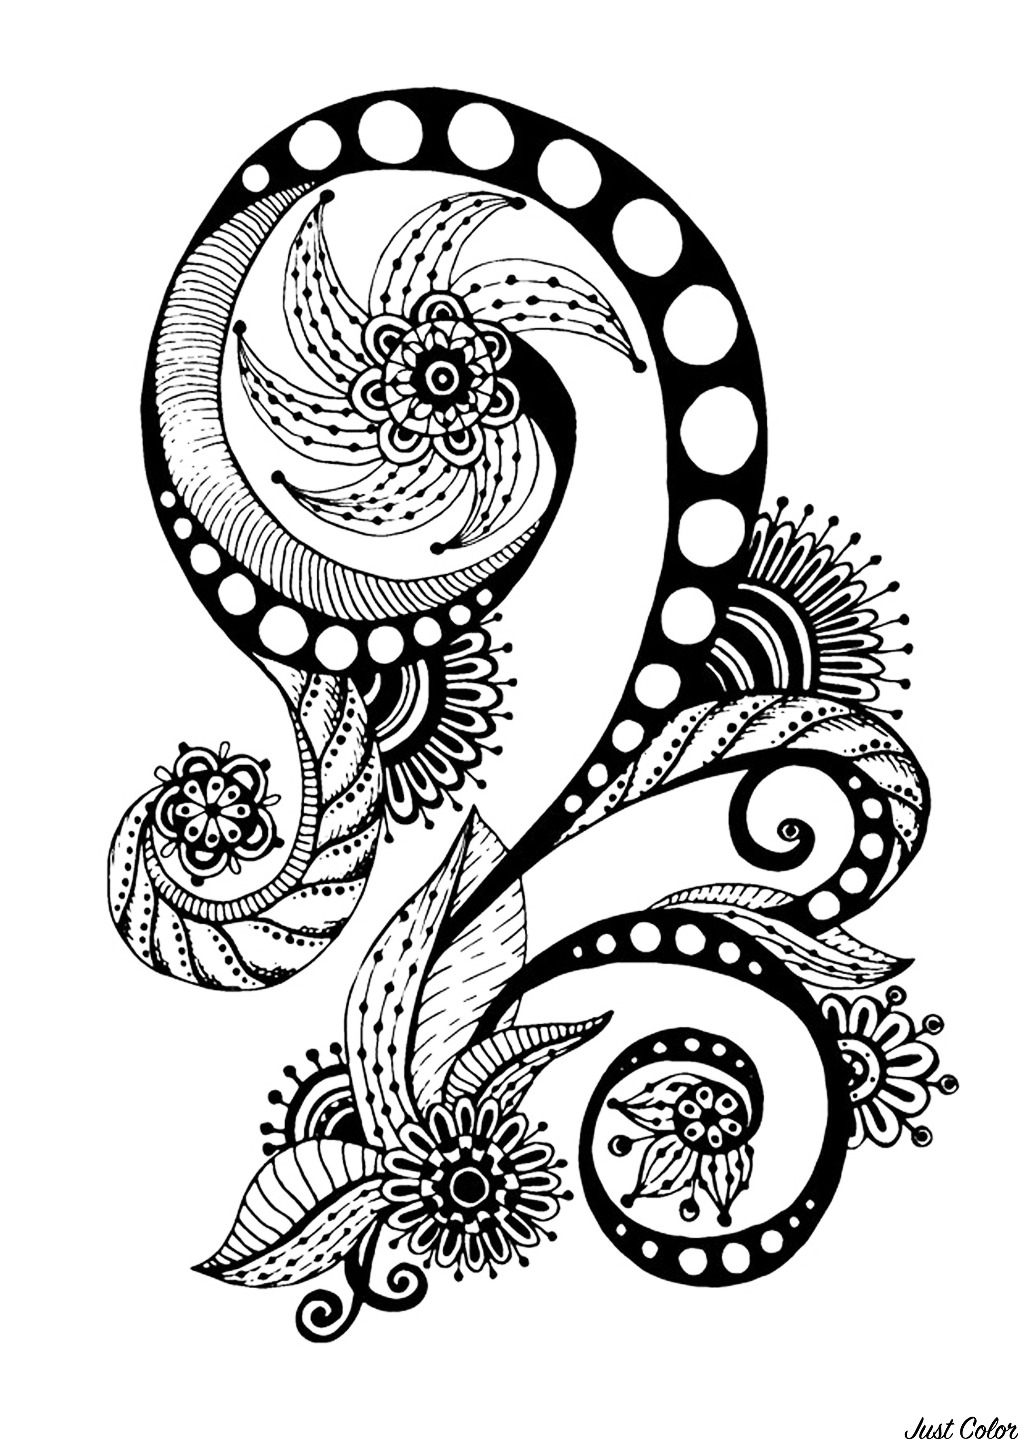 Zen & Anti-stress Coloring page : Abstract pattern inspired by flowers : n°7